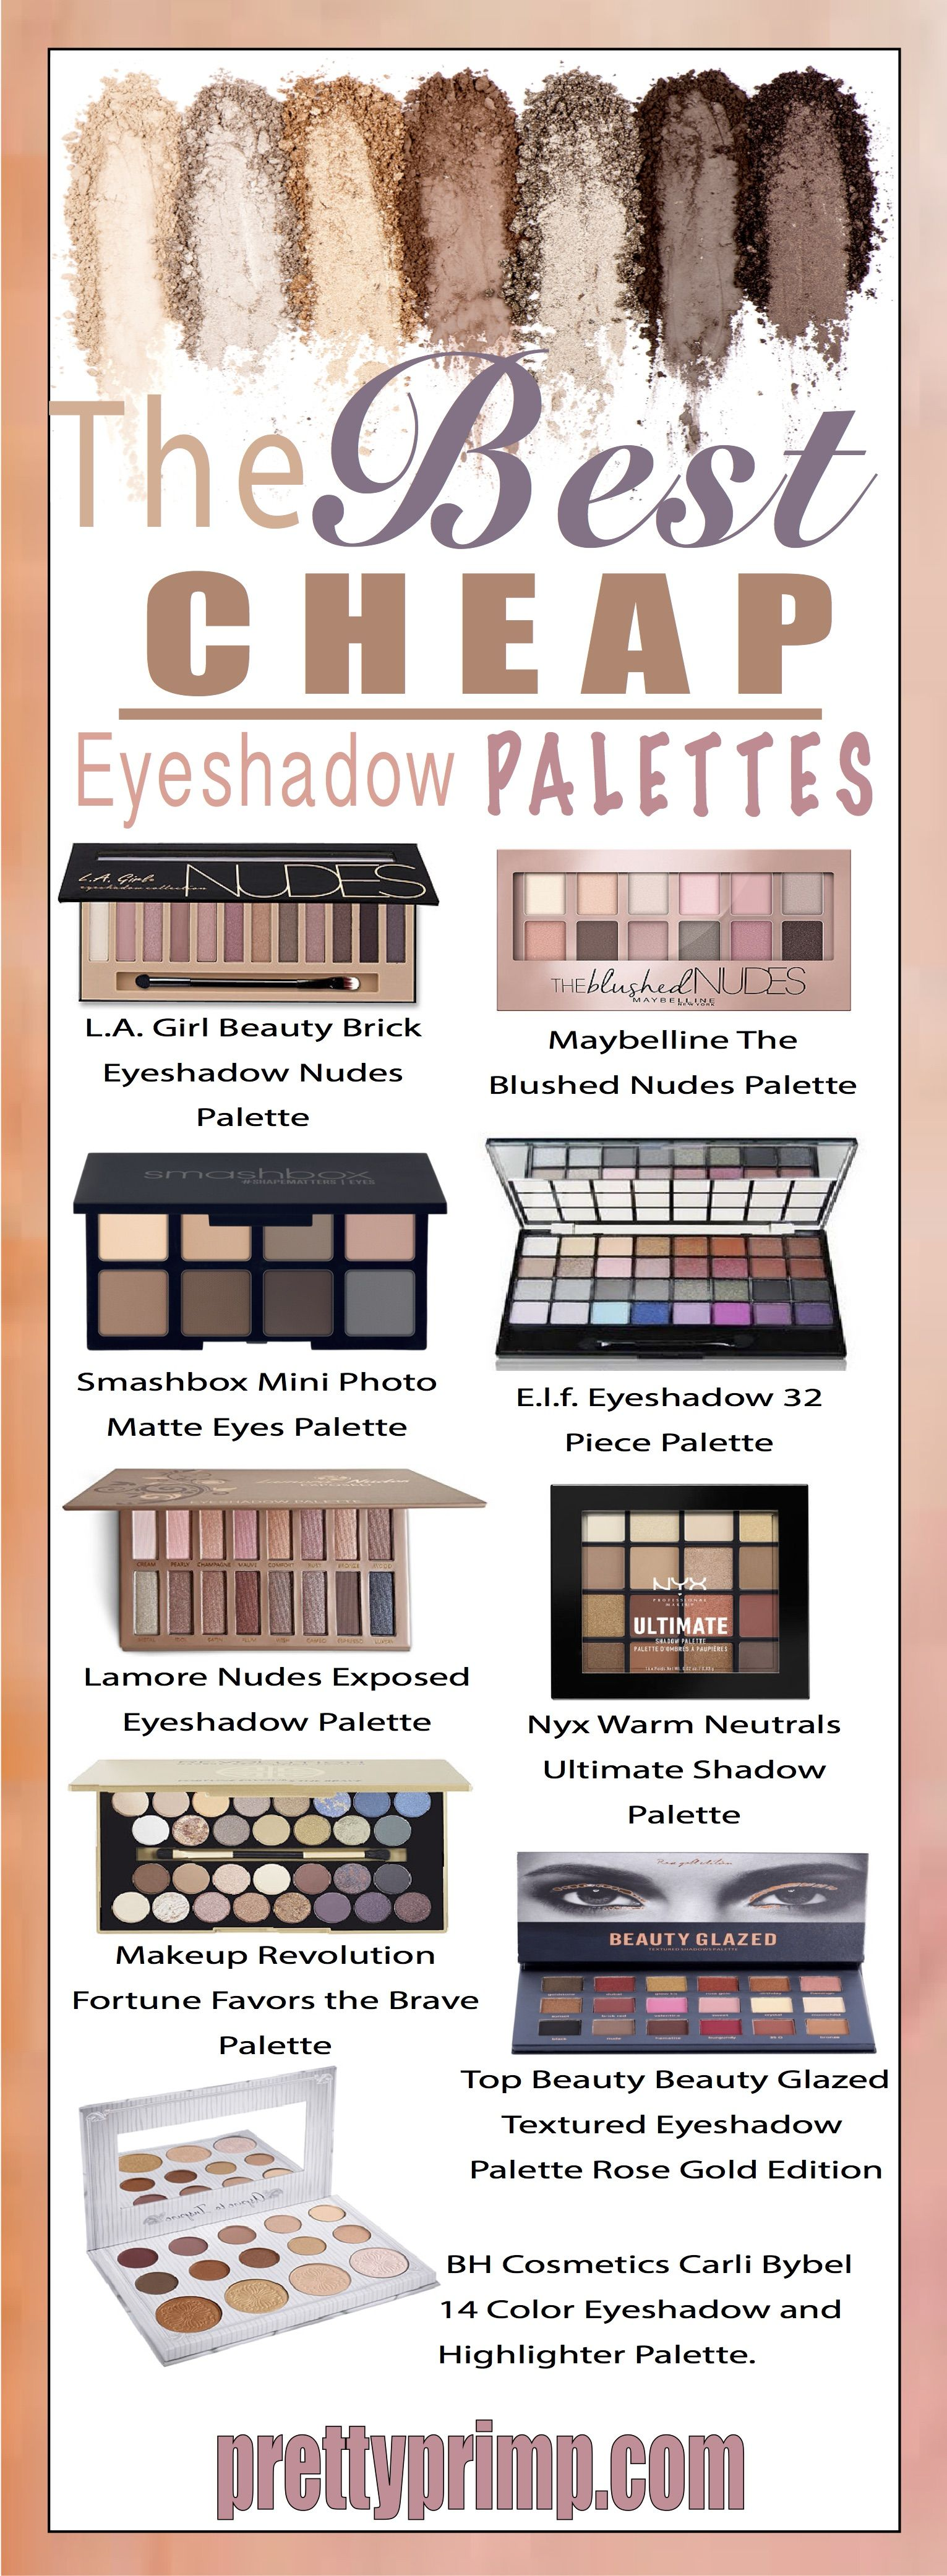 24 Best Cheap But Good Eyeshadow Palettes You NEED in Your